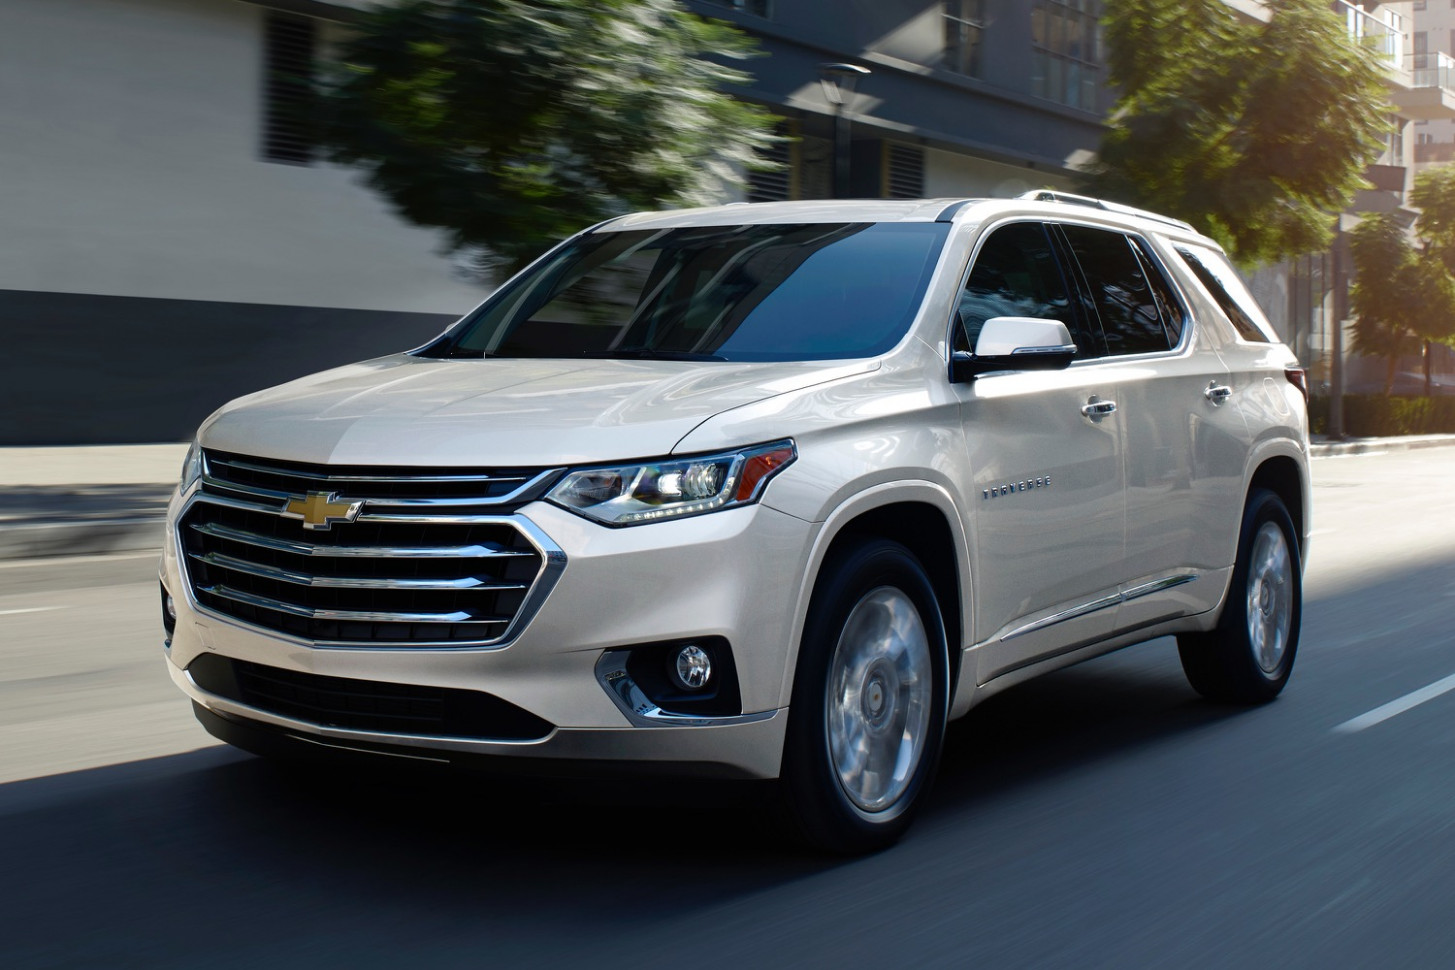 Chevy Memorial Day Sales Event Takes $10,10 Off Traverse | GM ..